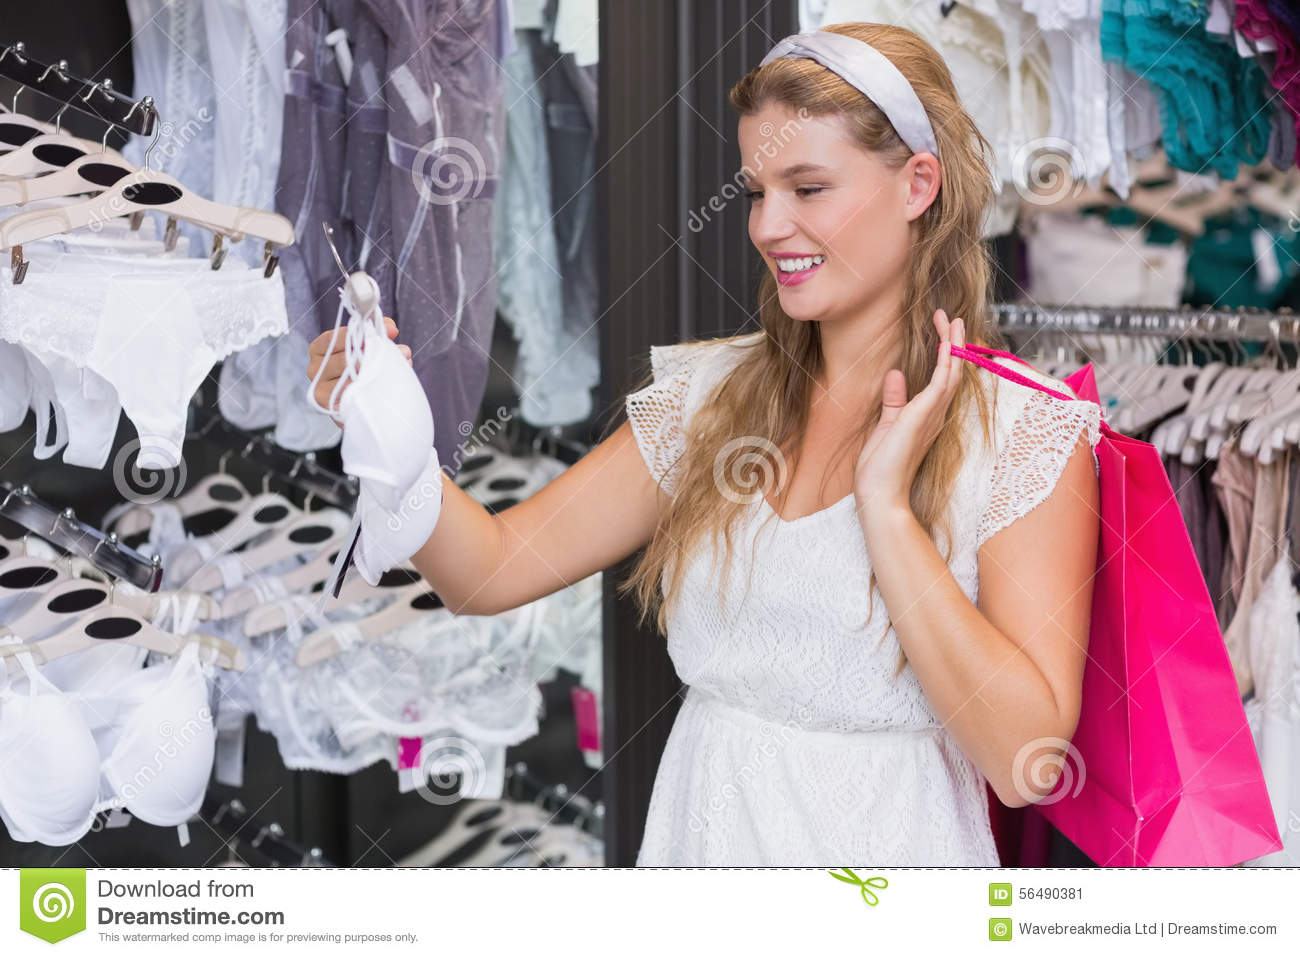 Pretty Woman Buying Lingerie Stock Photo - Image: 56490381